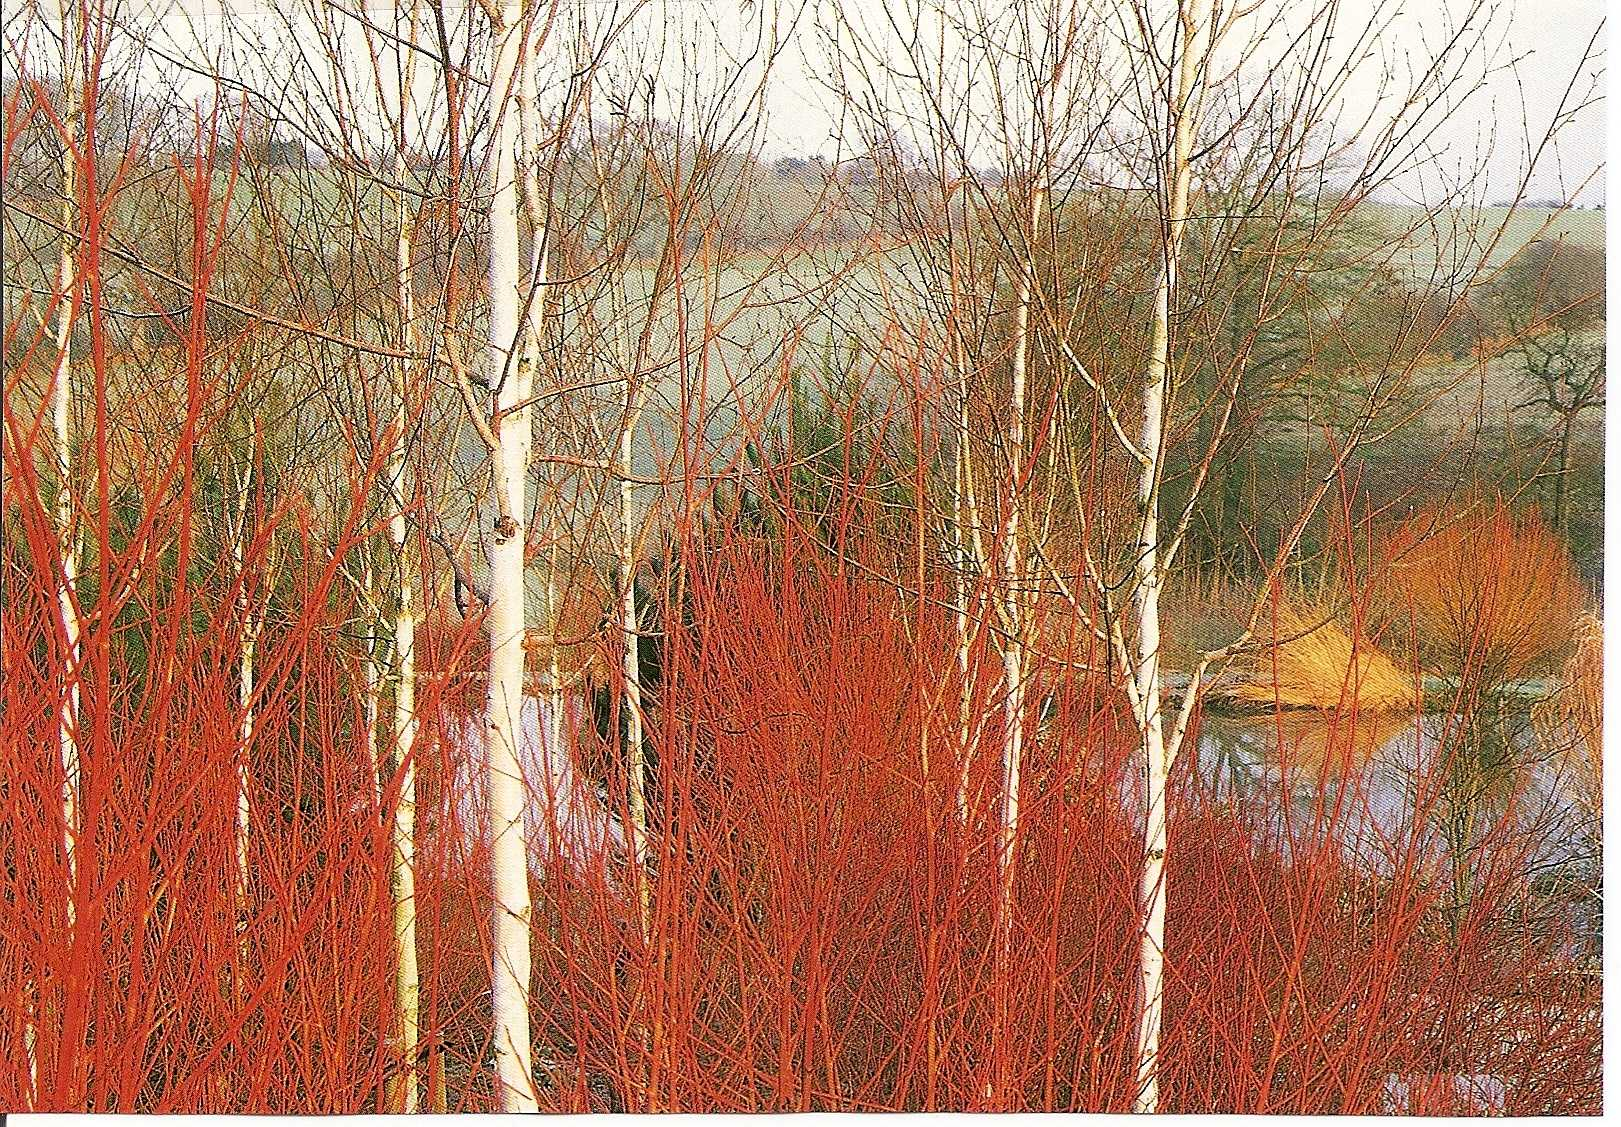 Red winter stems under birch